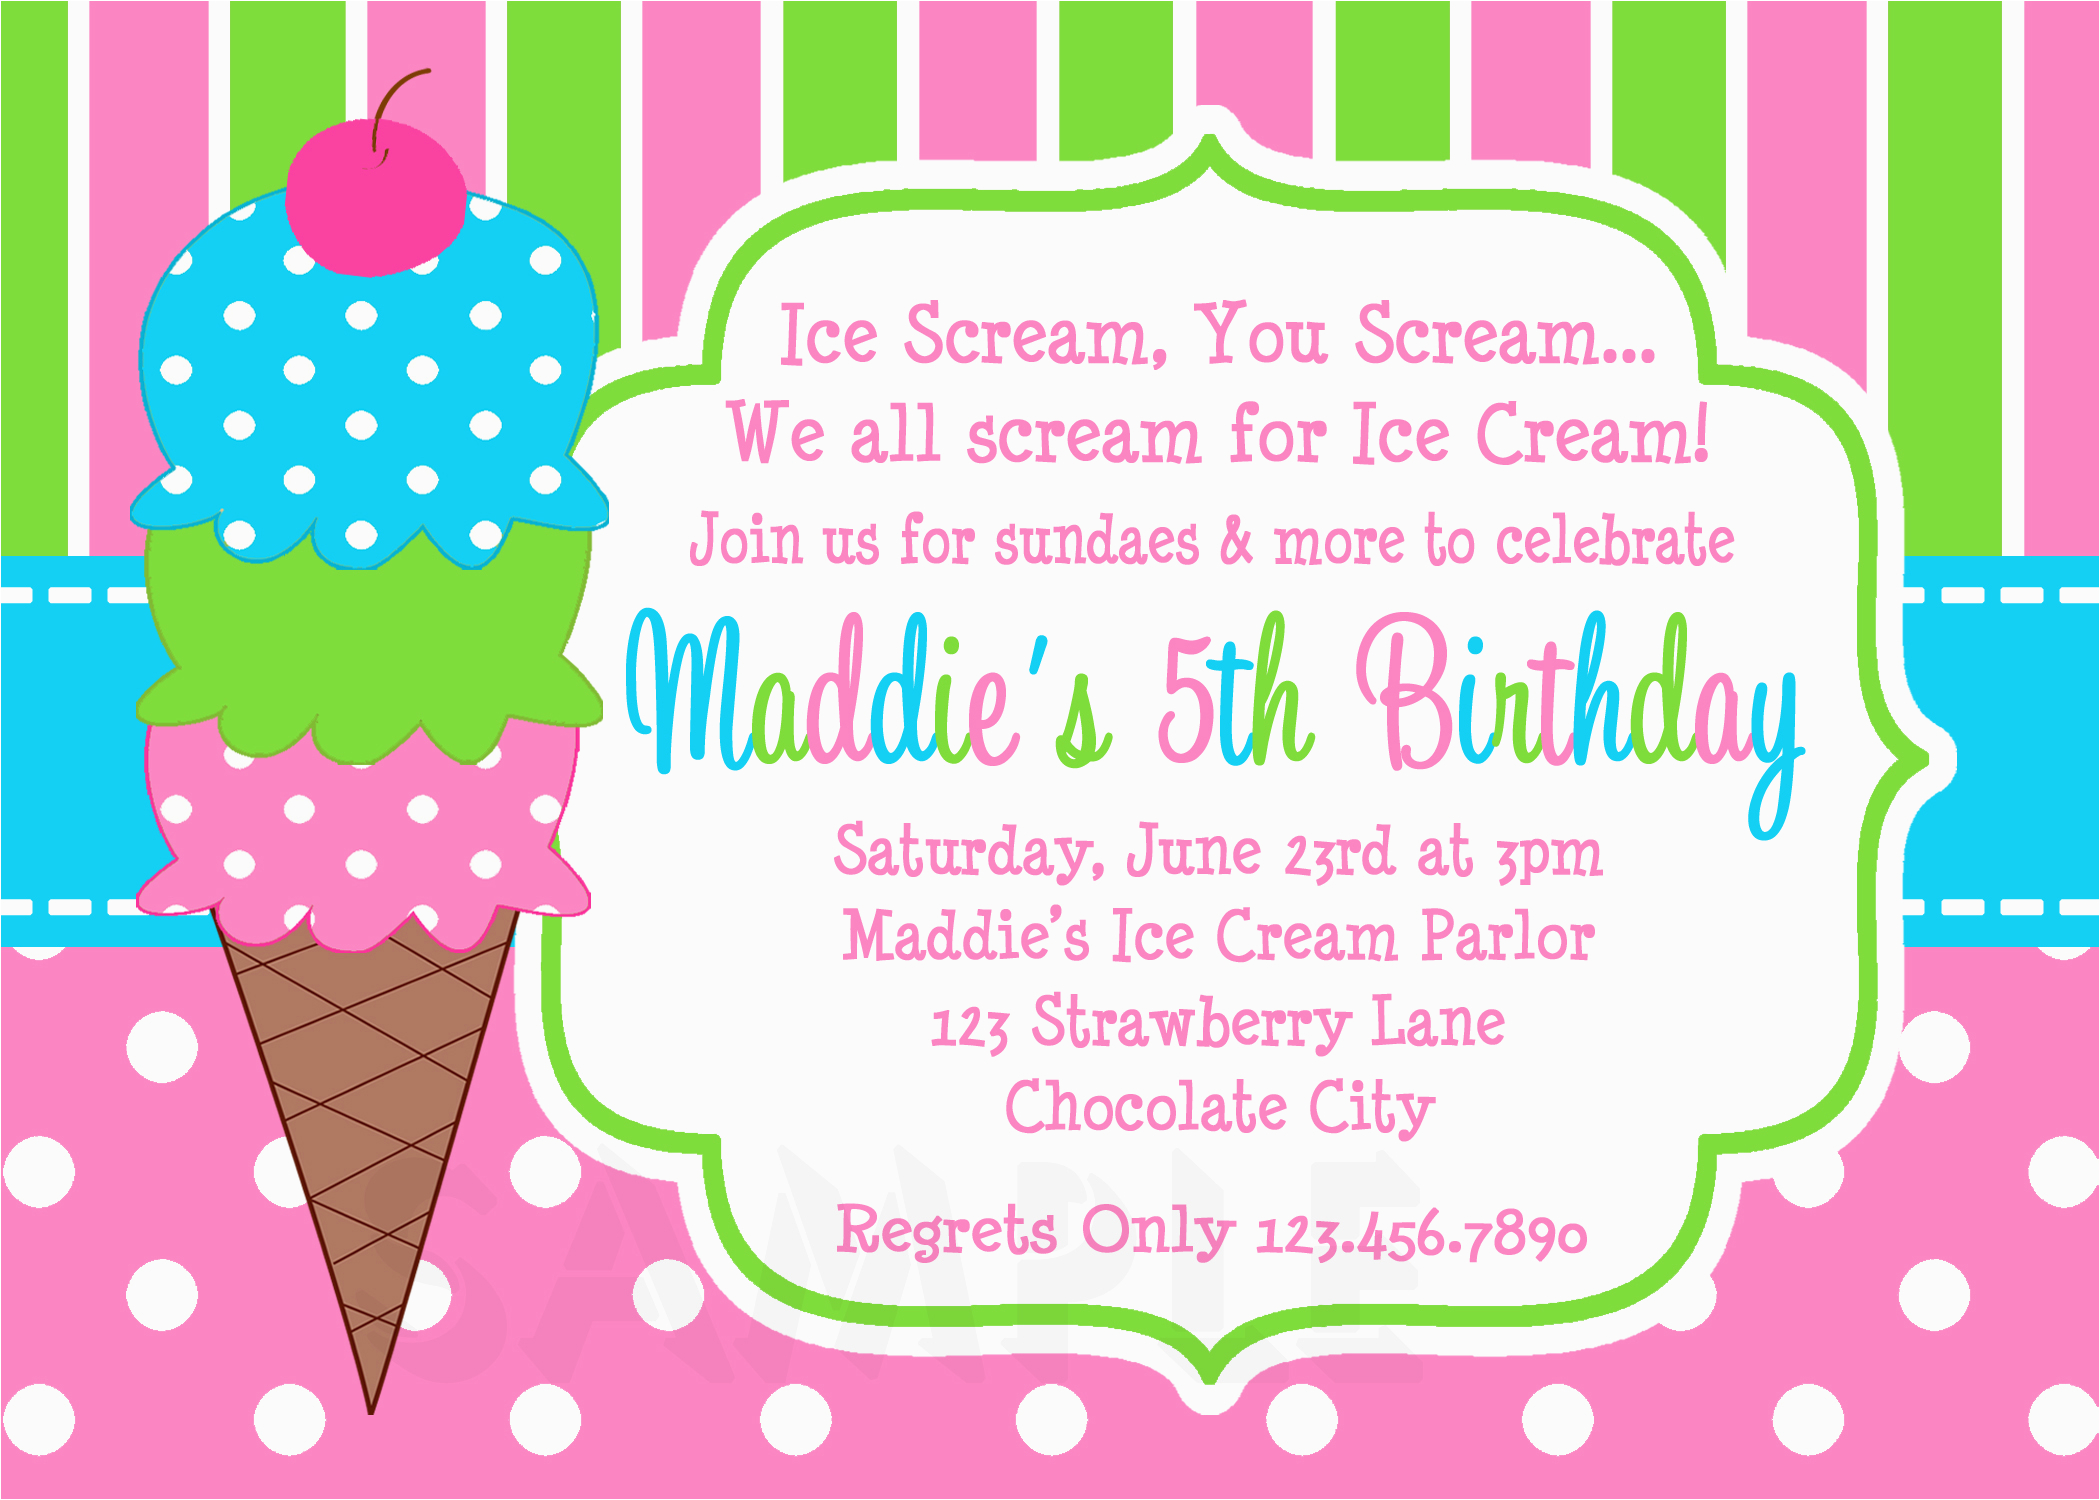 Nud birthday party invitation ideas girl free master thumbs